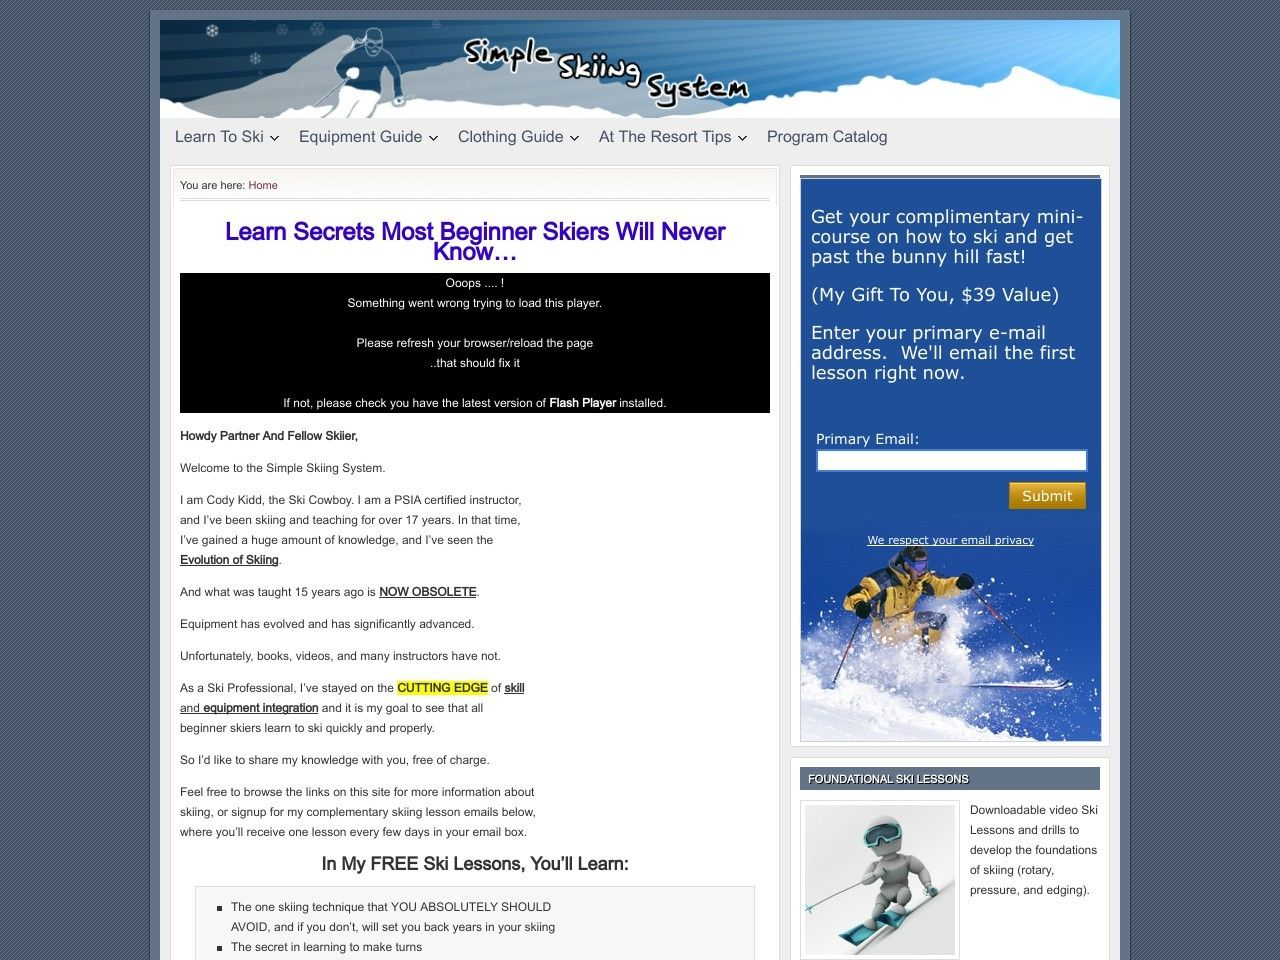 ① Simpleskiingsystem - http://www.vnulab.be/lab-review/%e2%91%a0-simpleskiingsystem